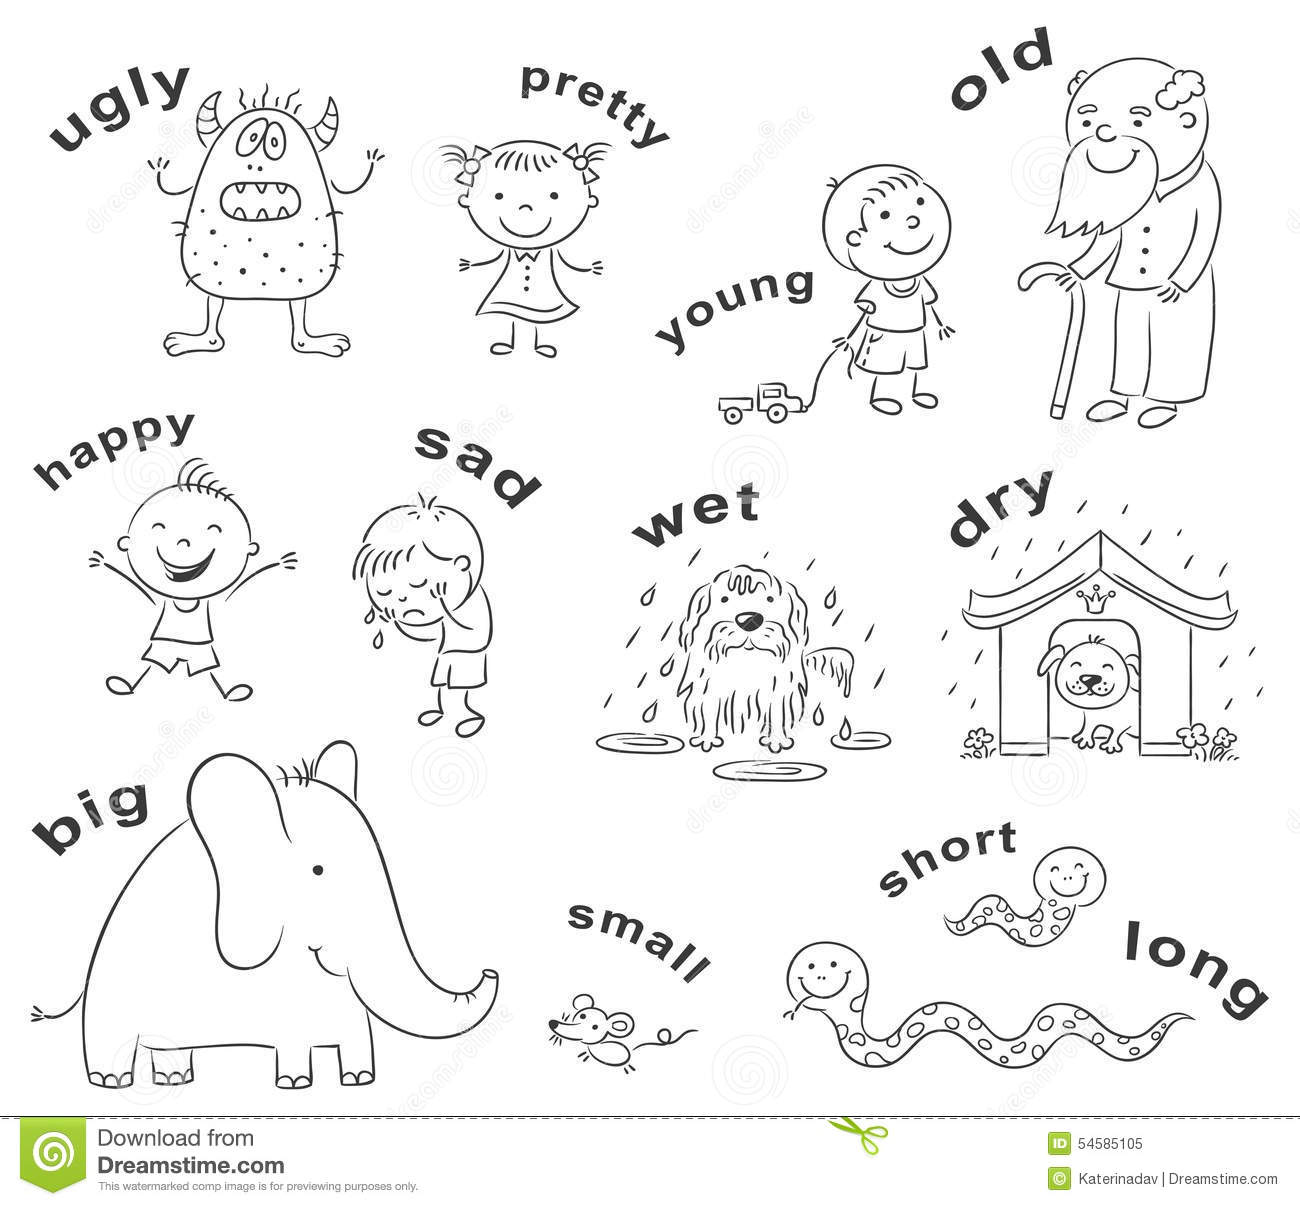 Antonyms Cartoons, Black And White Stock Vector